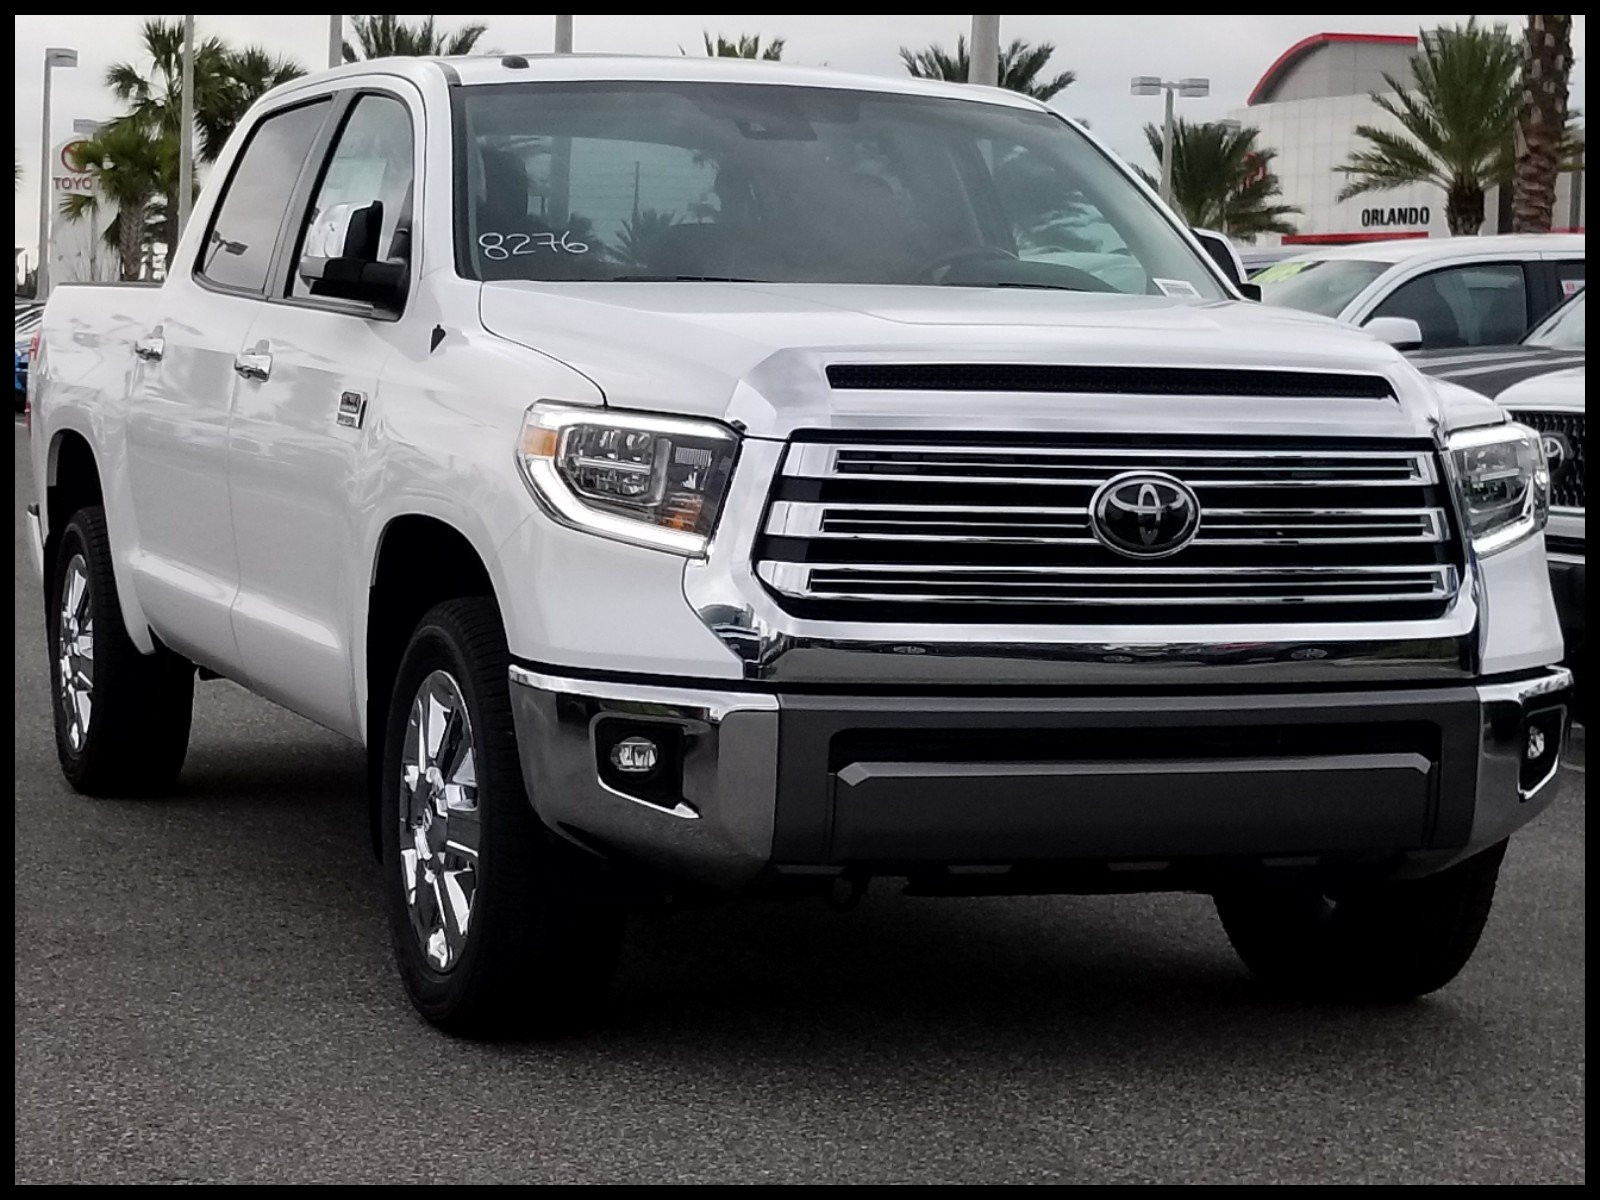 Captivating toyota Tundra 1794 Edition Price New 2018 toyota Tundra 1794 Edition Crewmax In orlando